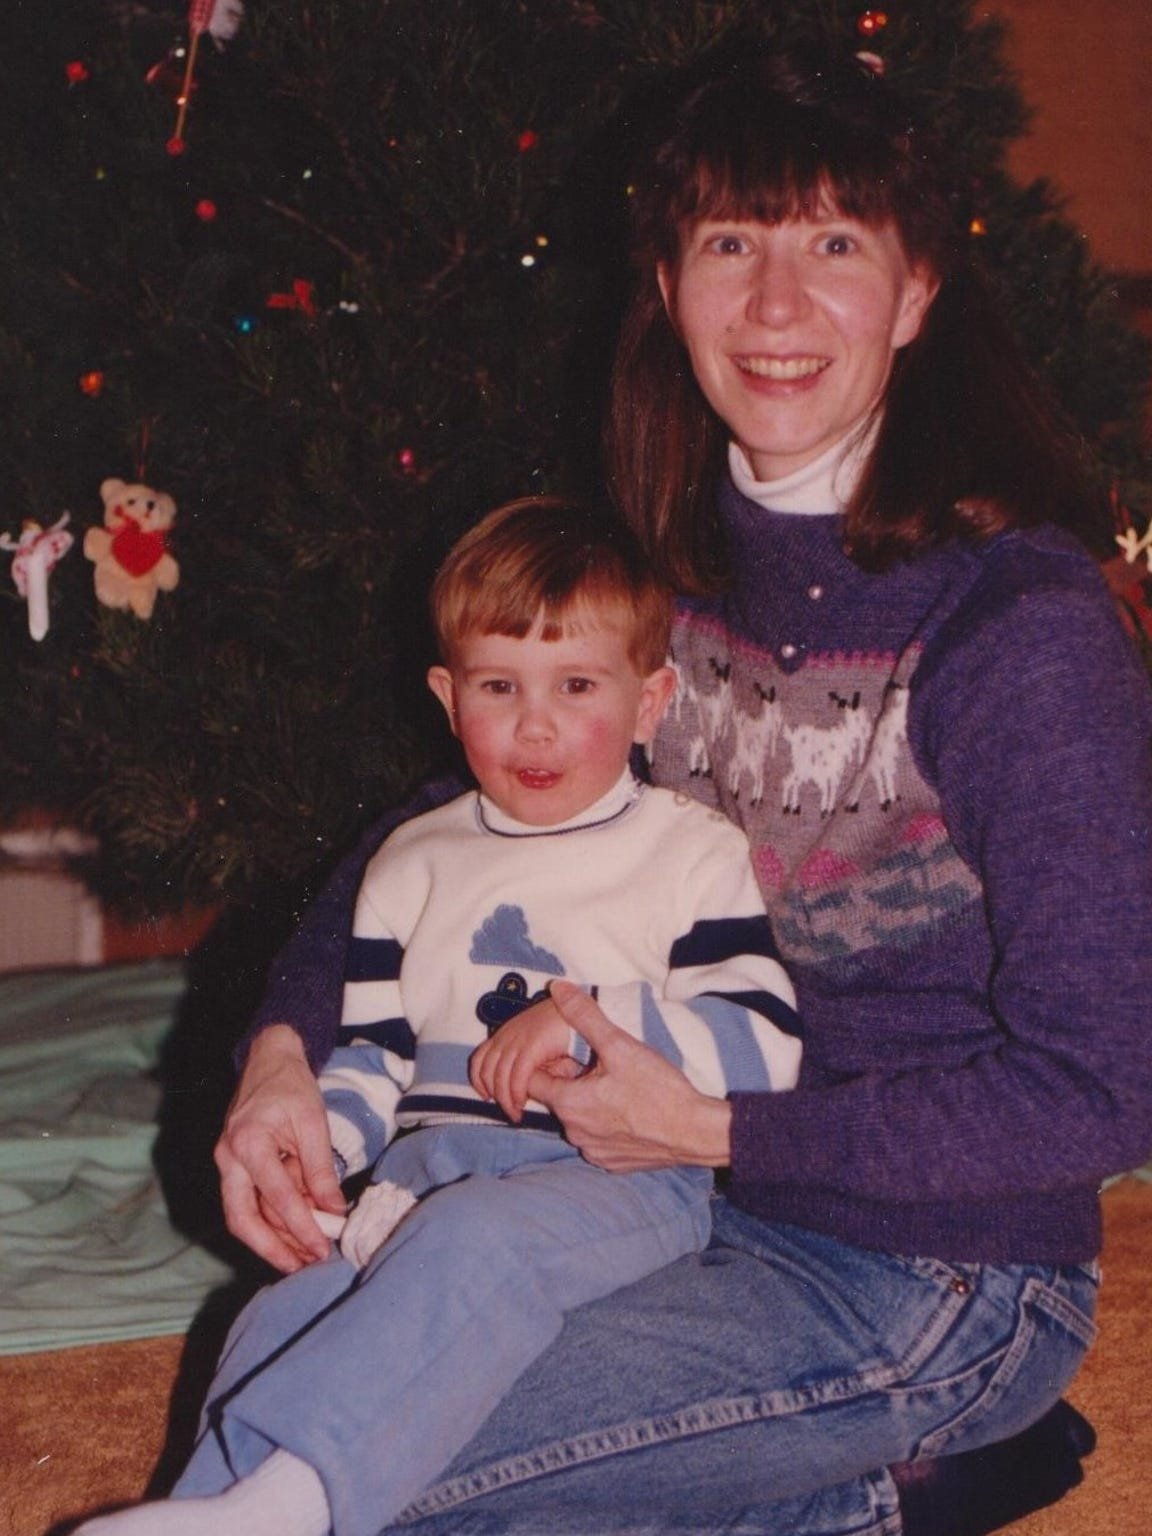 Ben Decker as a child in the late 1980s with his mother